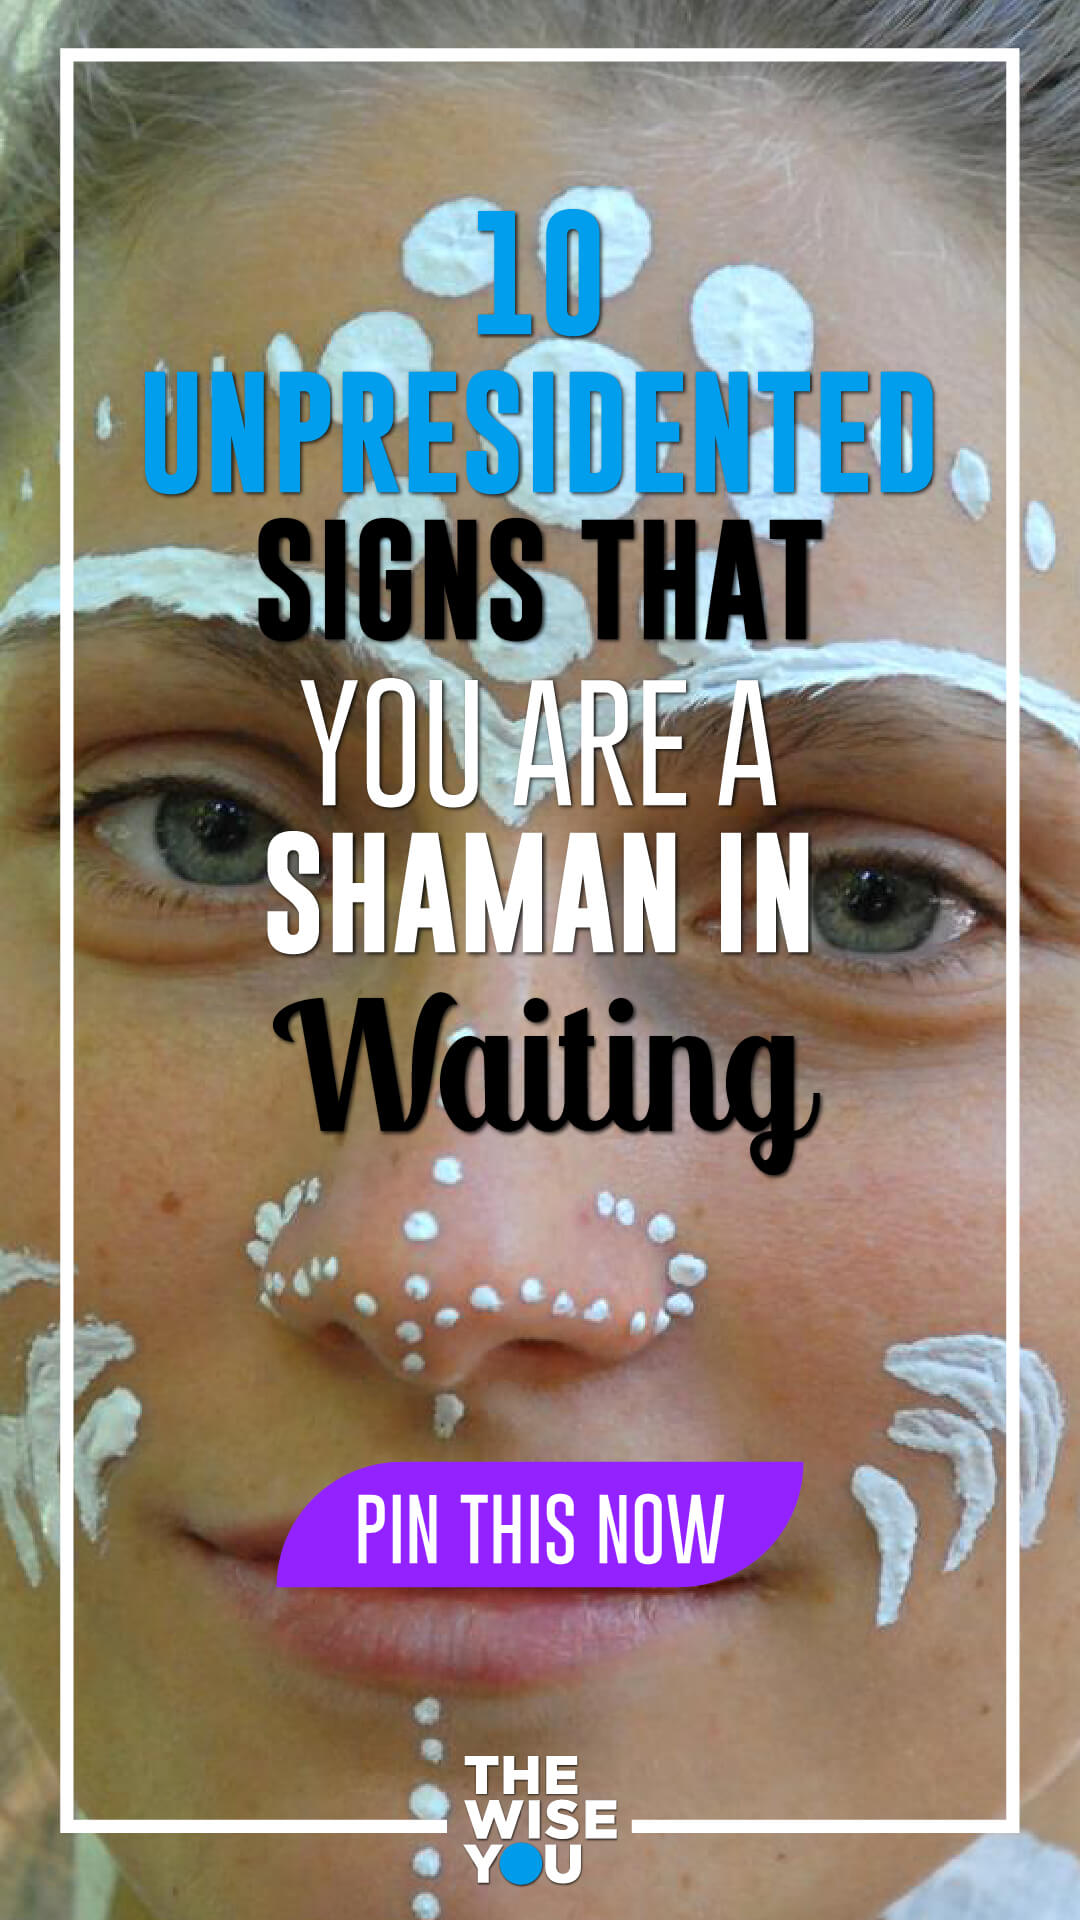 10 Unprecedented Signs That You Are a Shaman in Waiting